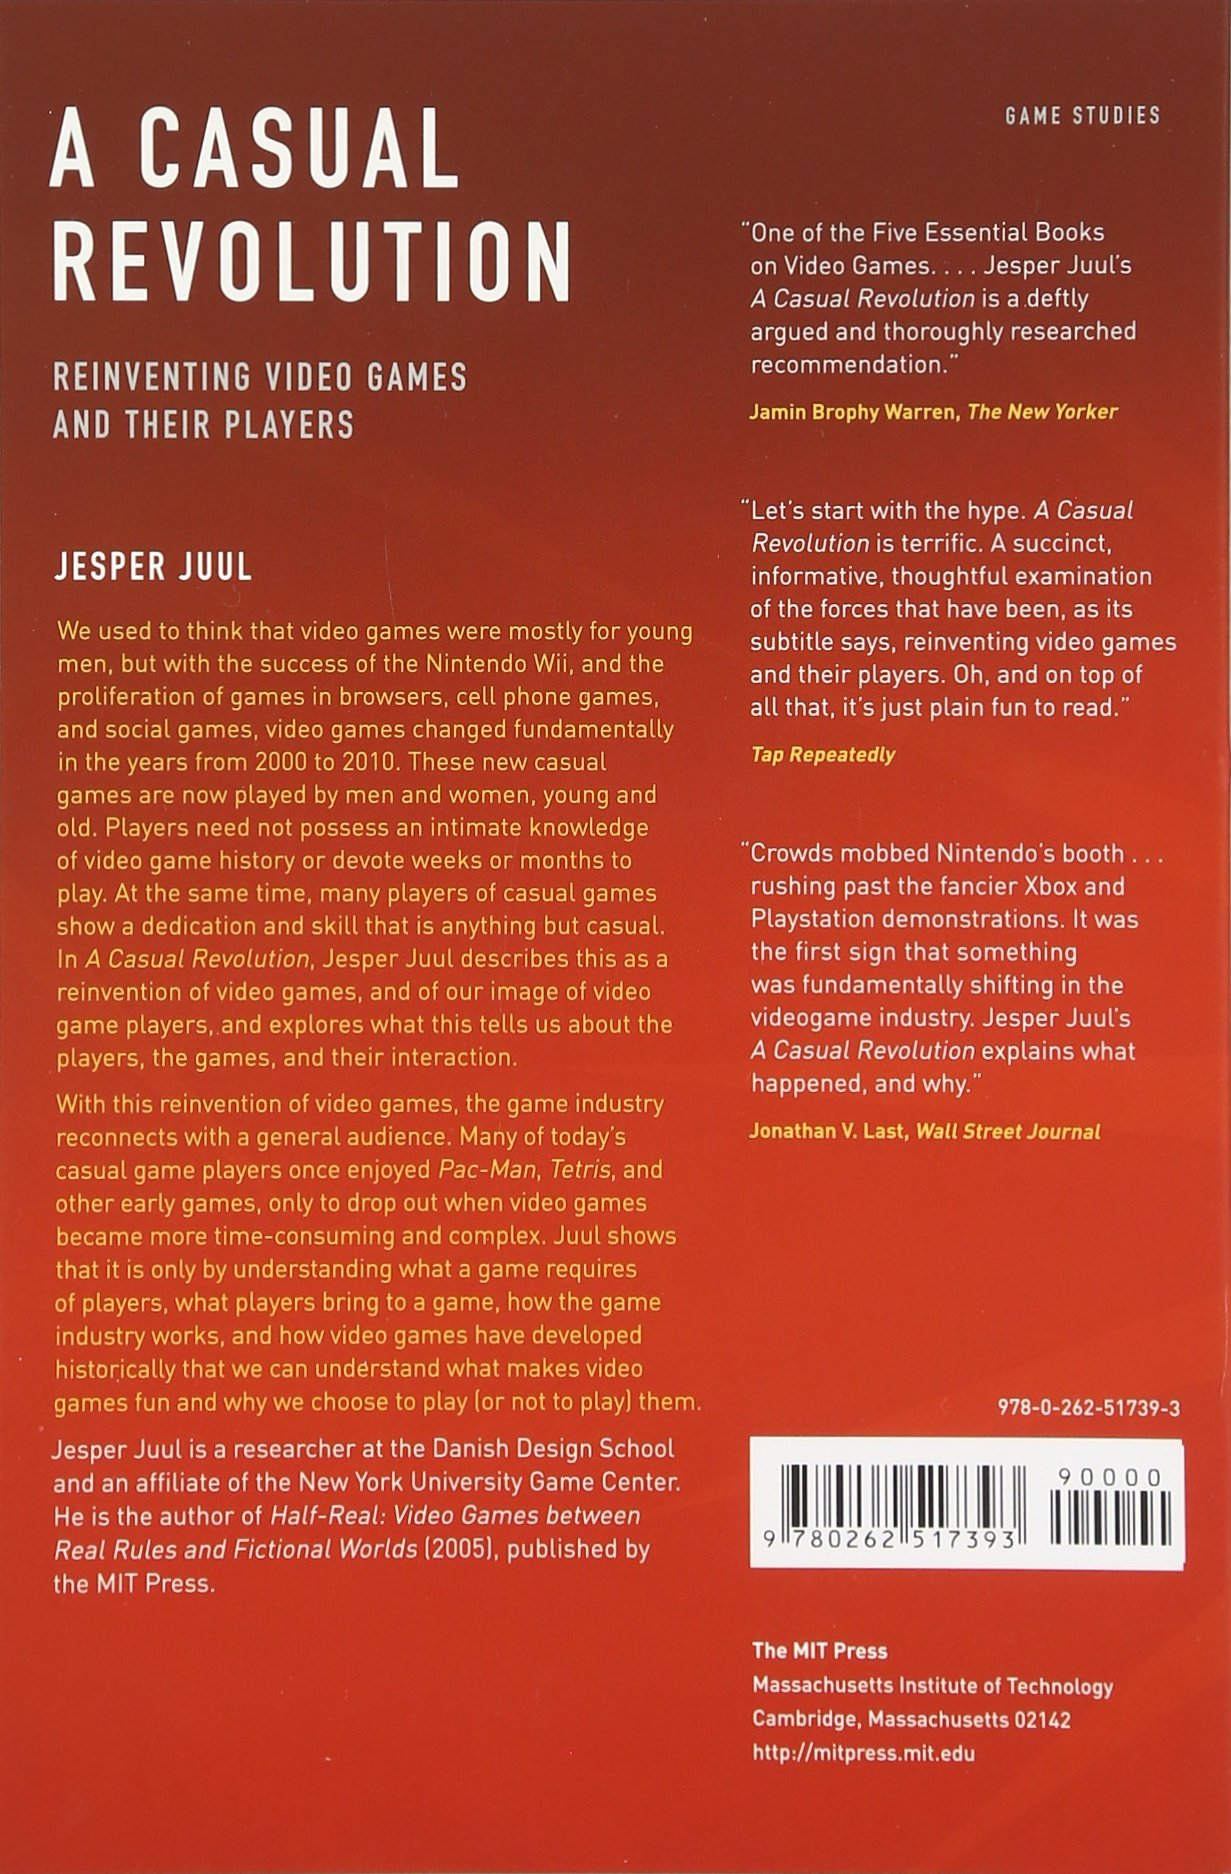 Amazon: A Casual Revolution: Reinventing Video Games And Their Players  (mit Press) (9780262517393): Jesper Juul: Books